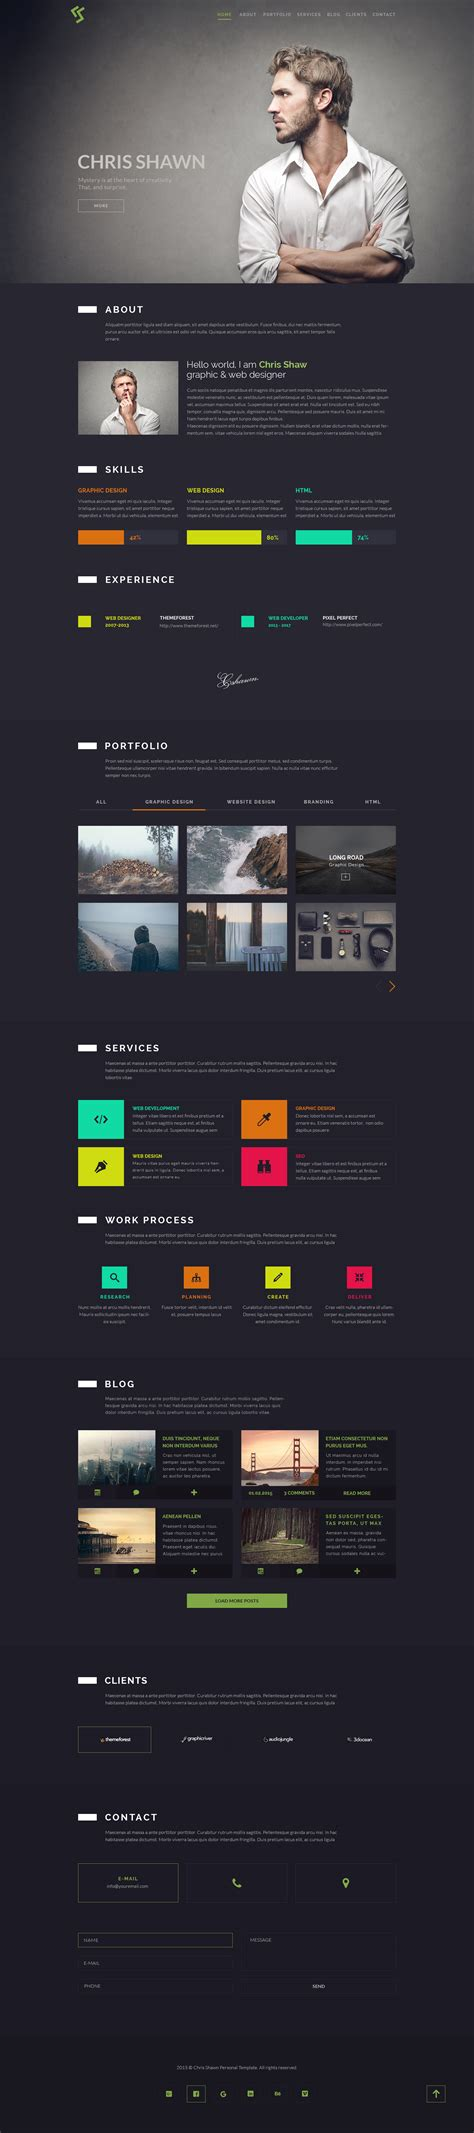 web page layout design rules chris shawn one page psd template by agonmustafa